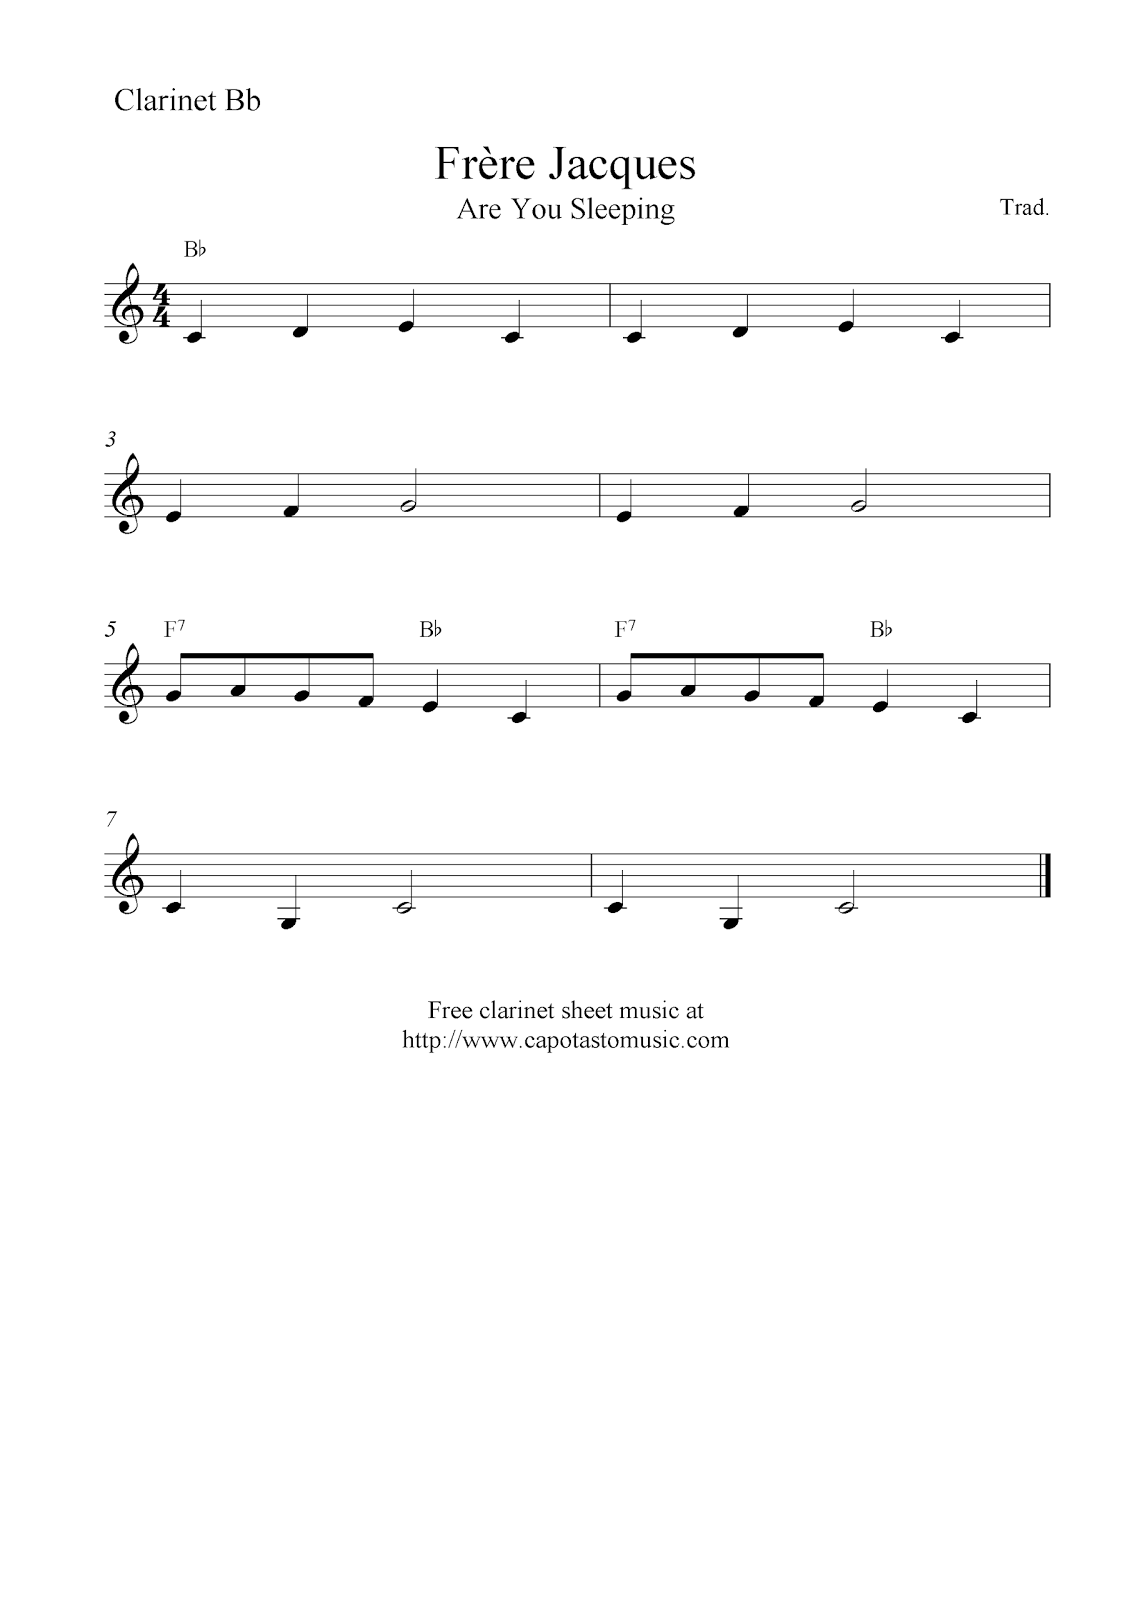 Free Printable Sheet Music Frere Jacques Are You Sleeping Free Easy Clarinet Sheet Music Notes